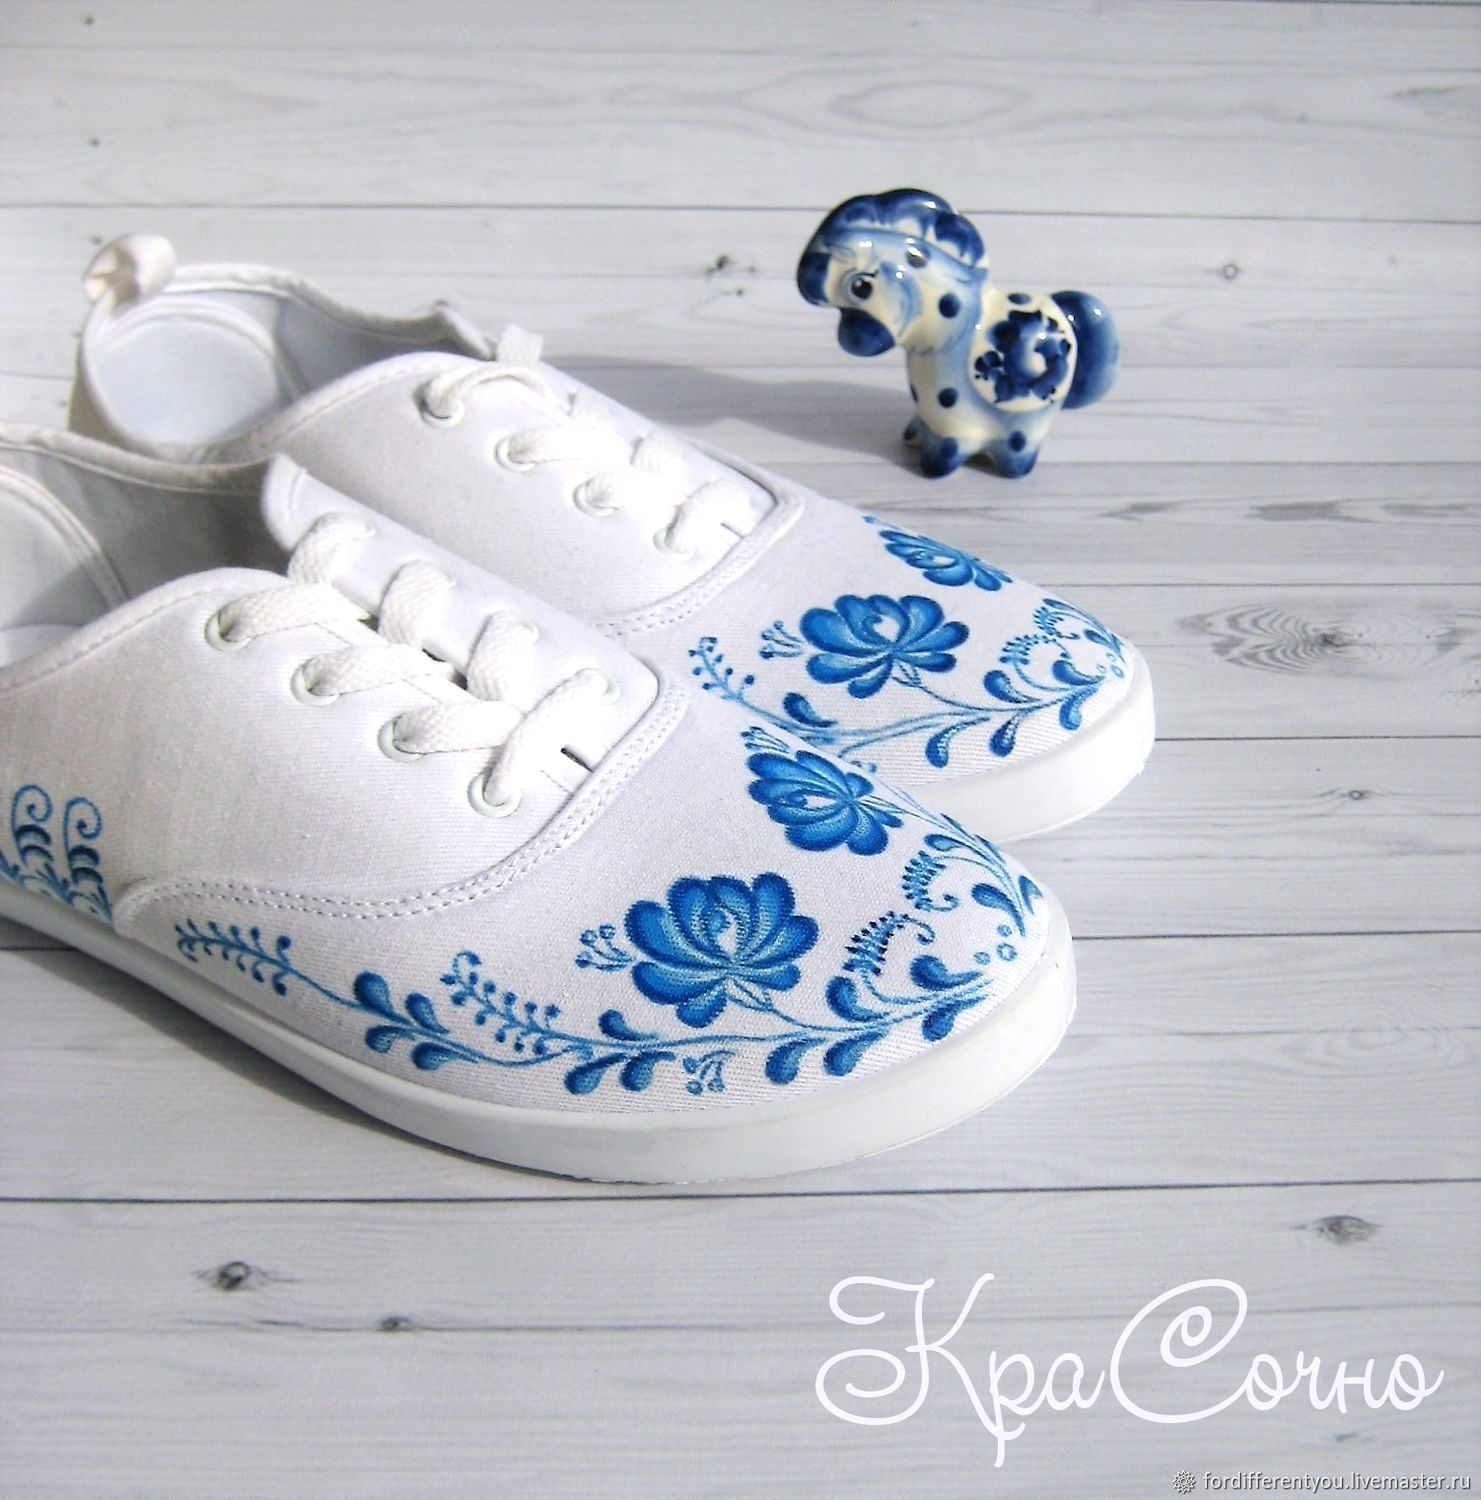 Sneakers: Sneakers painted shoes with a